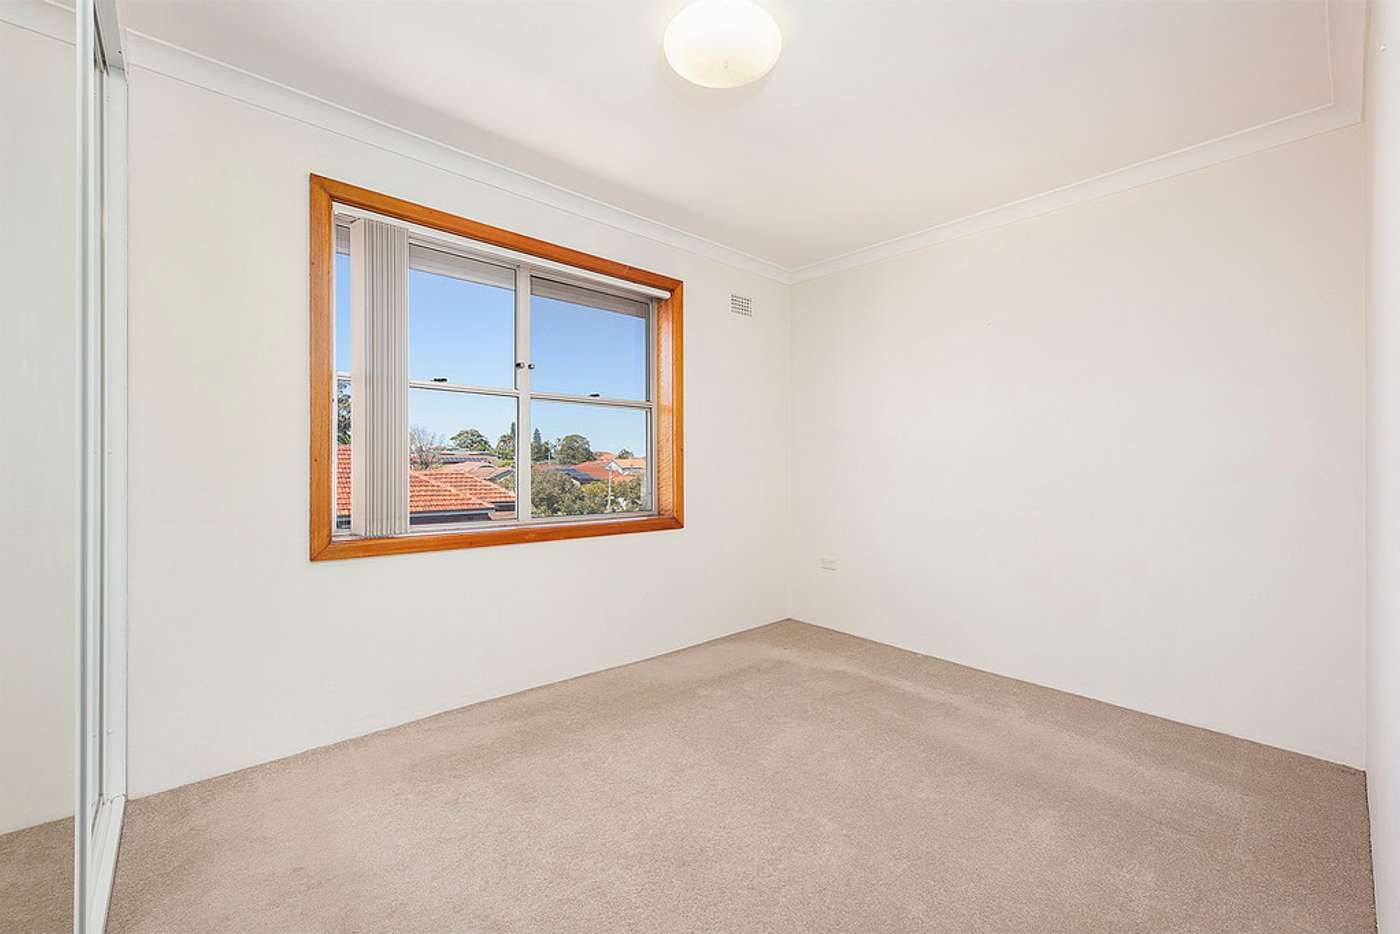 Sixth view of Homely apartment listing, 12/285 MAROUBRA ROAD, Maroubra NSW 2035